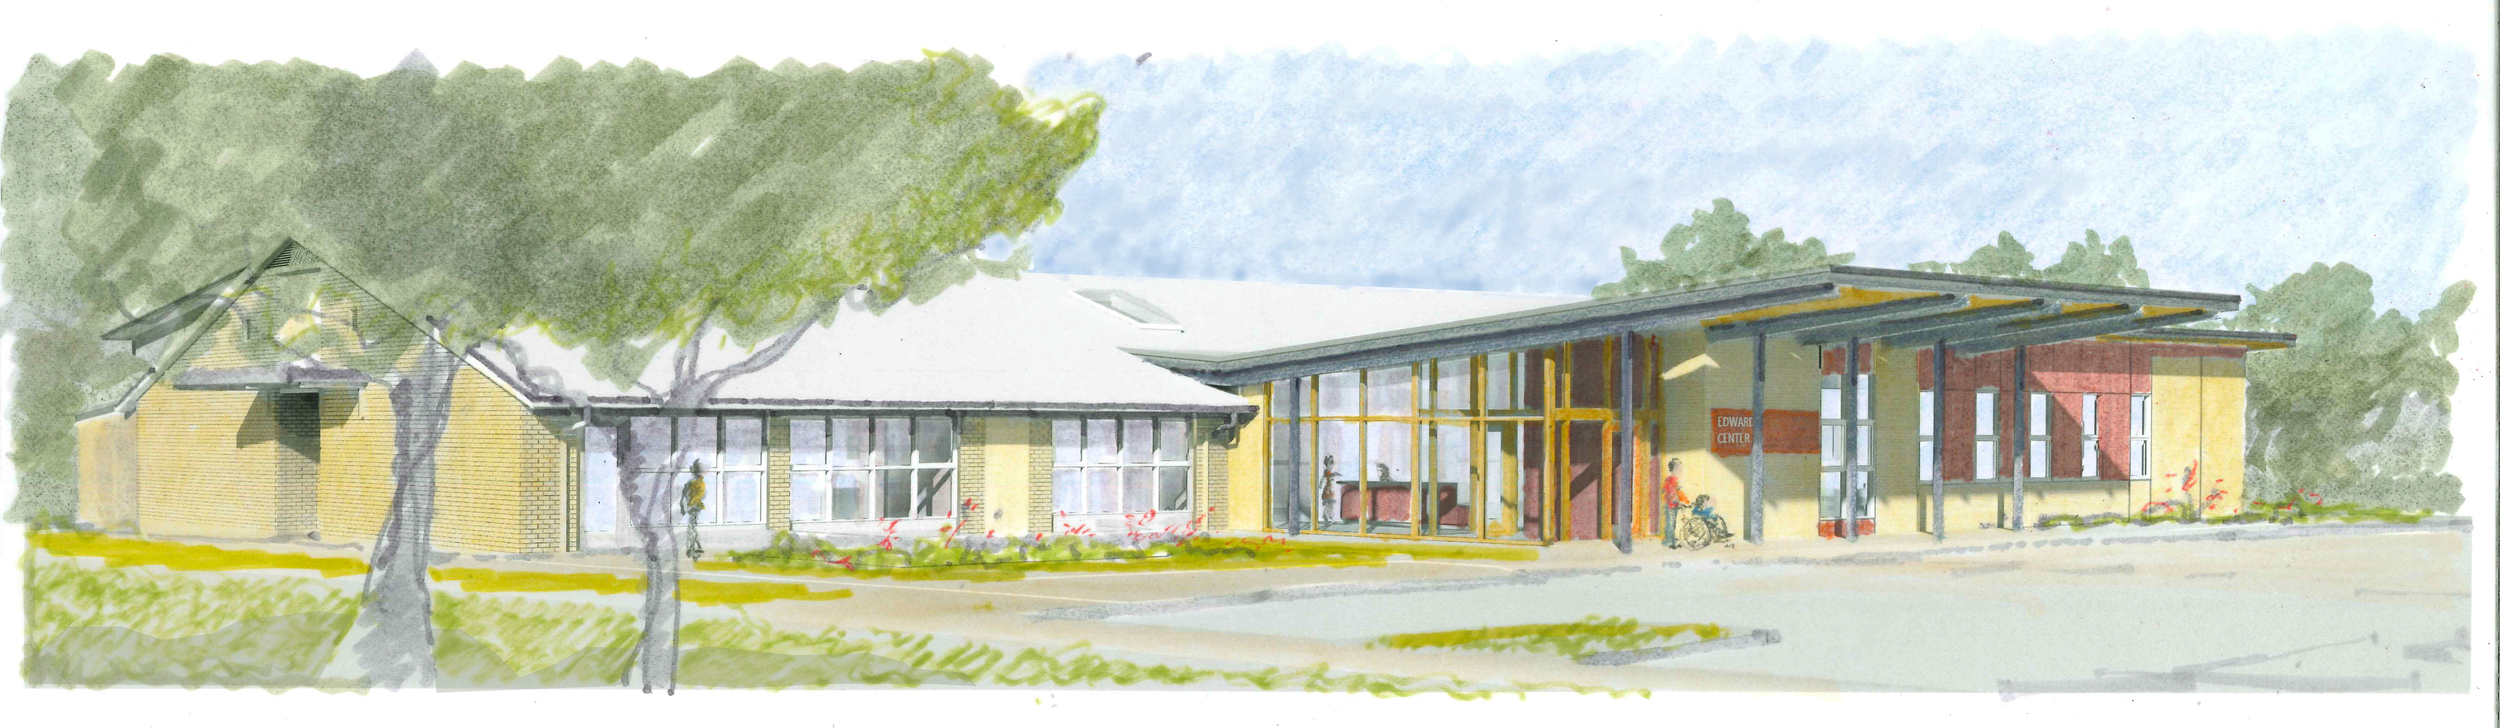 Edwards Center Rendering.jpg